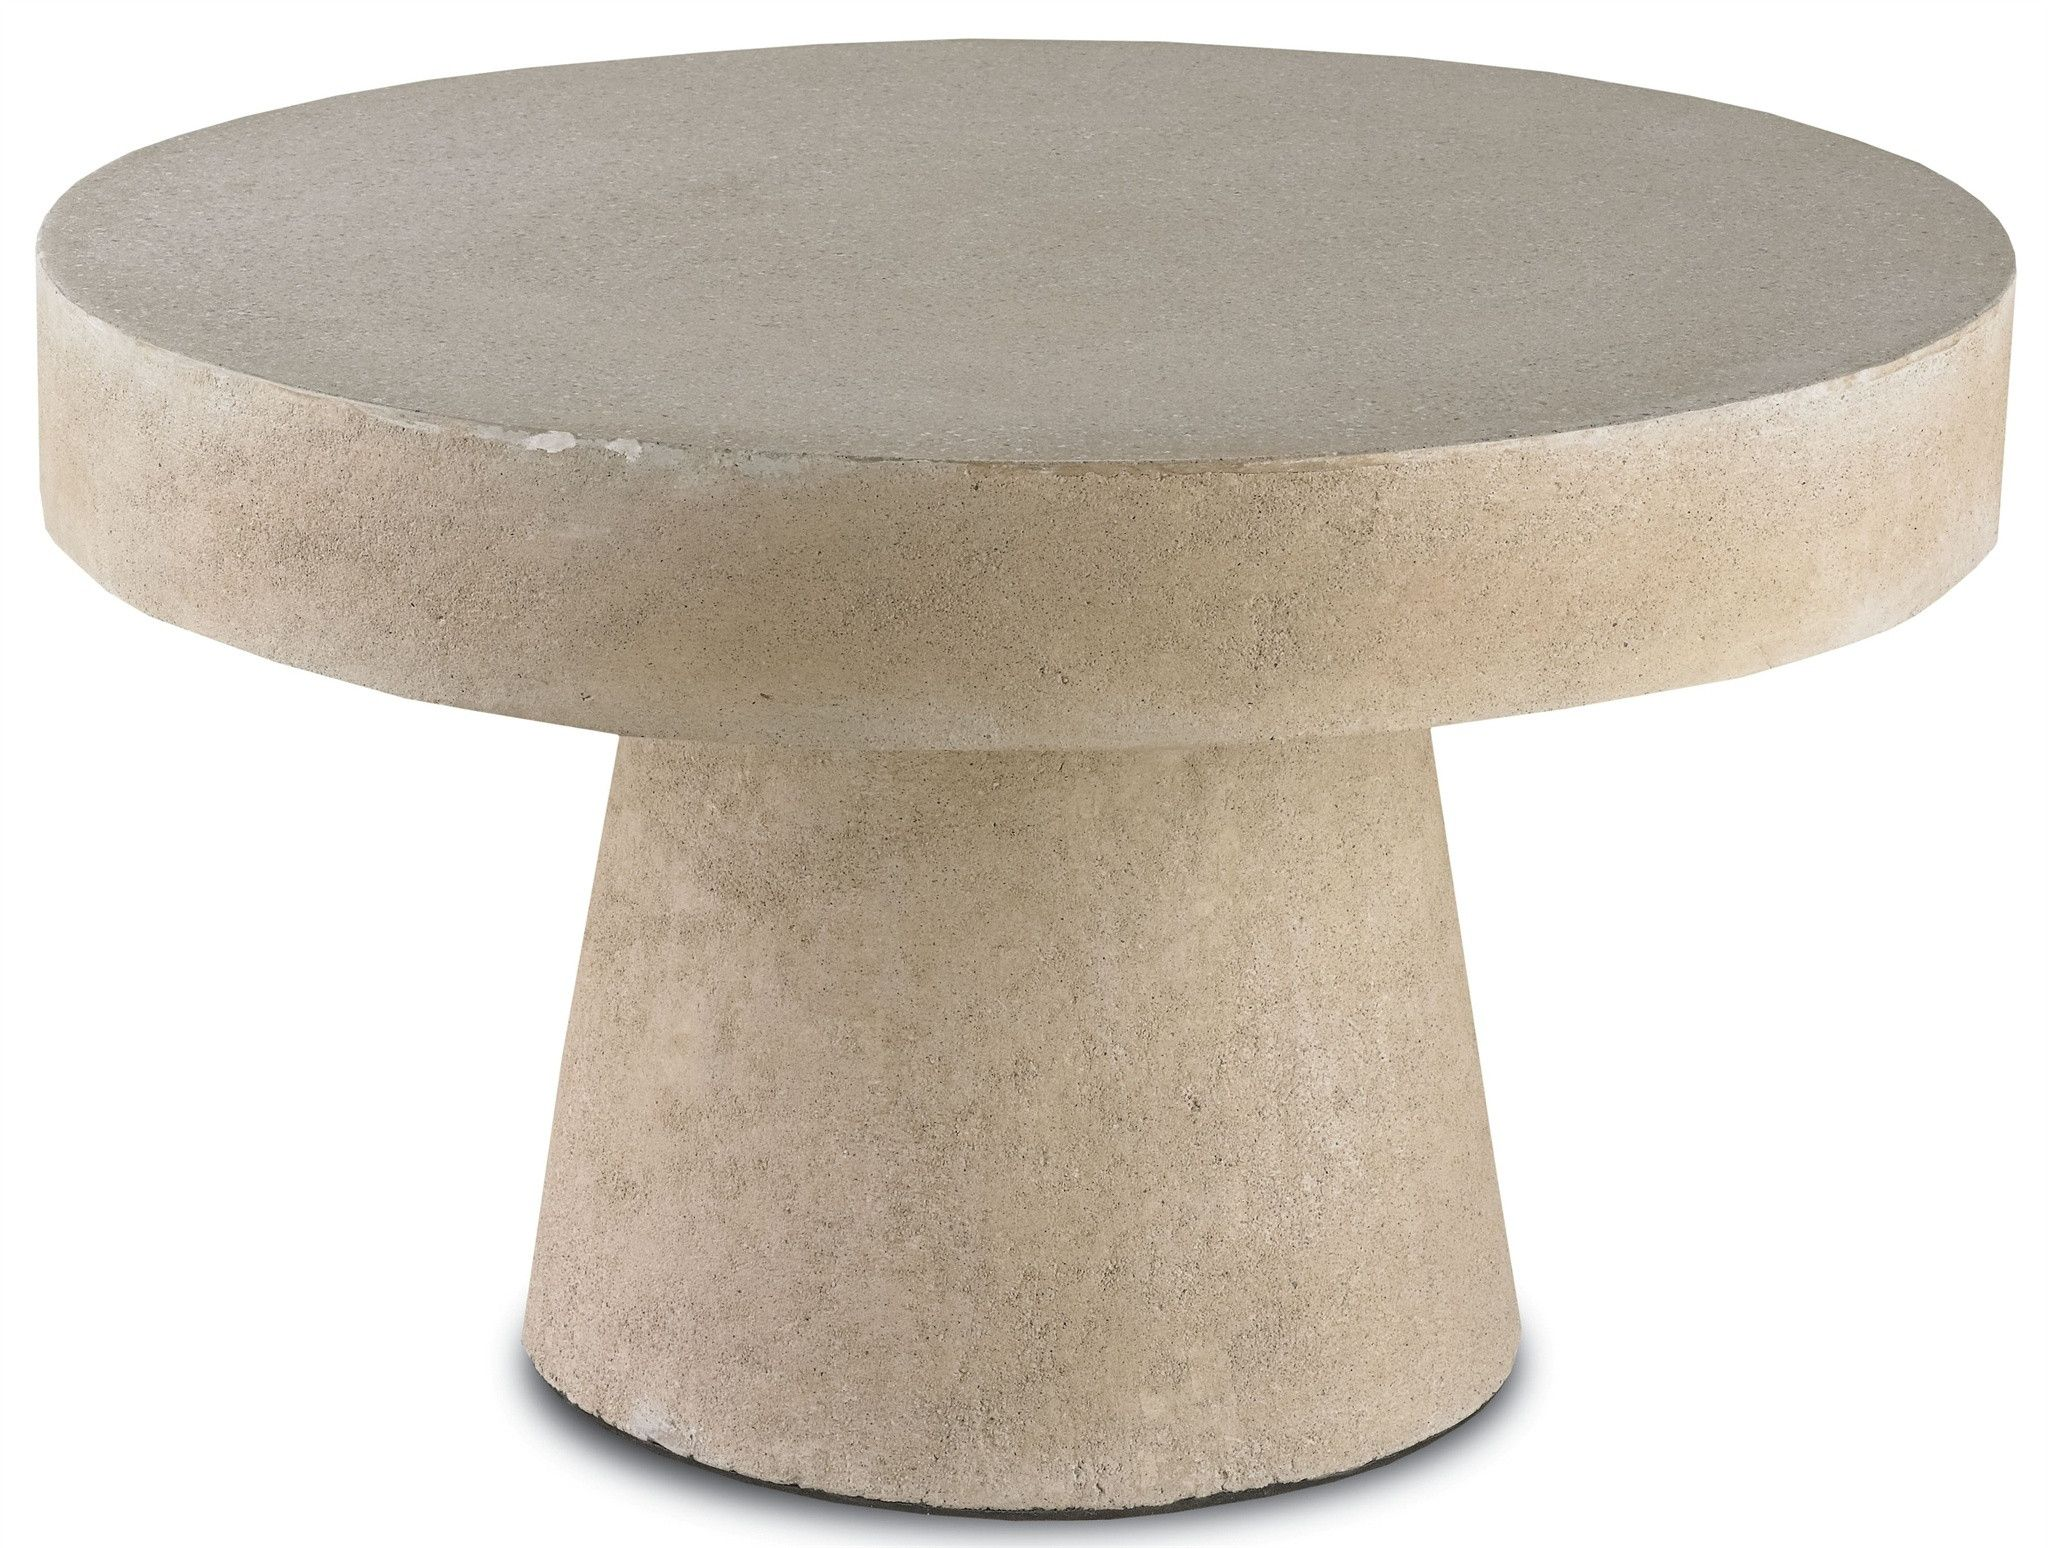 Higham Cocktail Table Outdoor Coffee Tables Round Coffee Table Coffee Table [ 1548 x 2048 Pixel ]